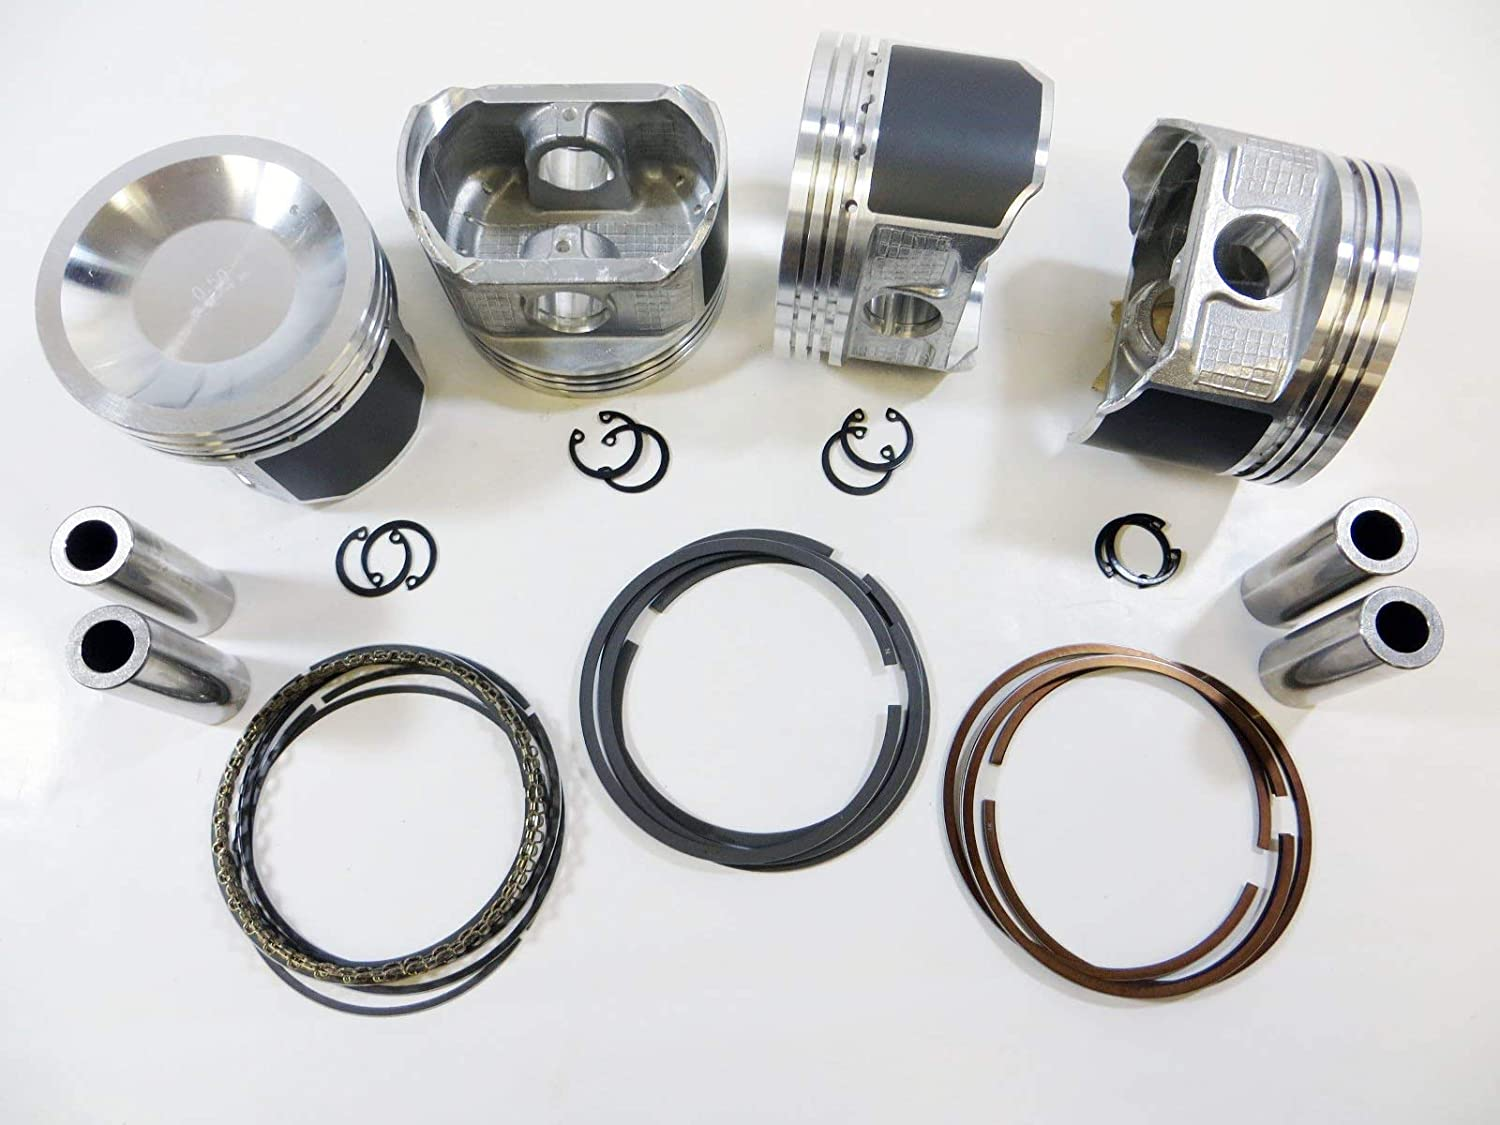 Upgraded Piston w//Premium Ring kit for 98-04 Nissan 2.4L Altima Frontier Xterra KA24DE 0.75mm .030